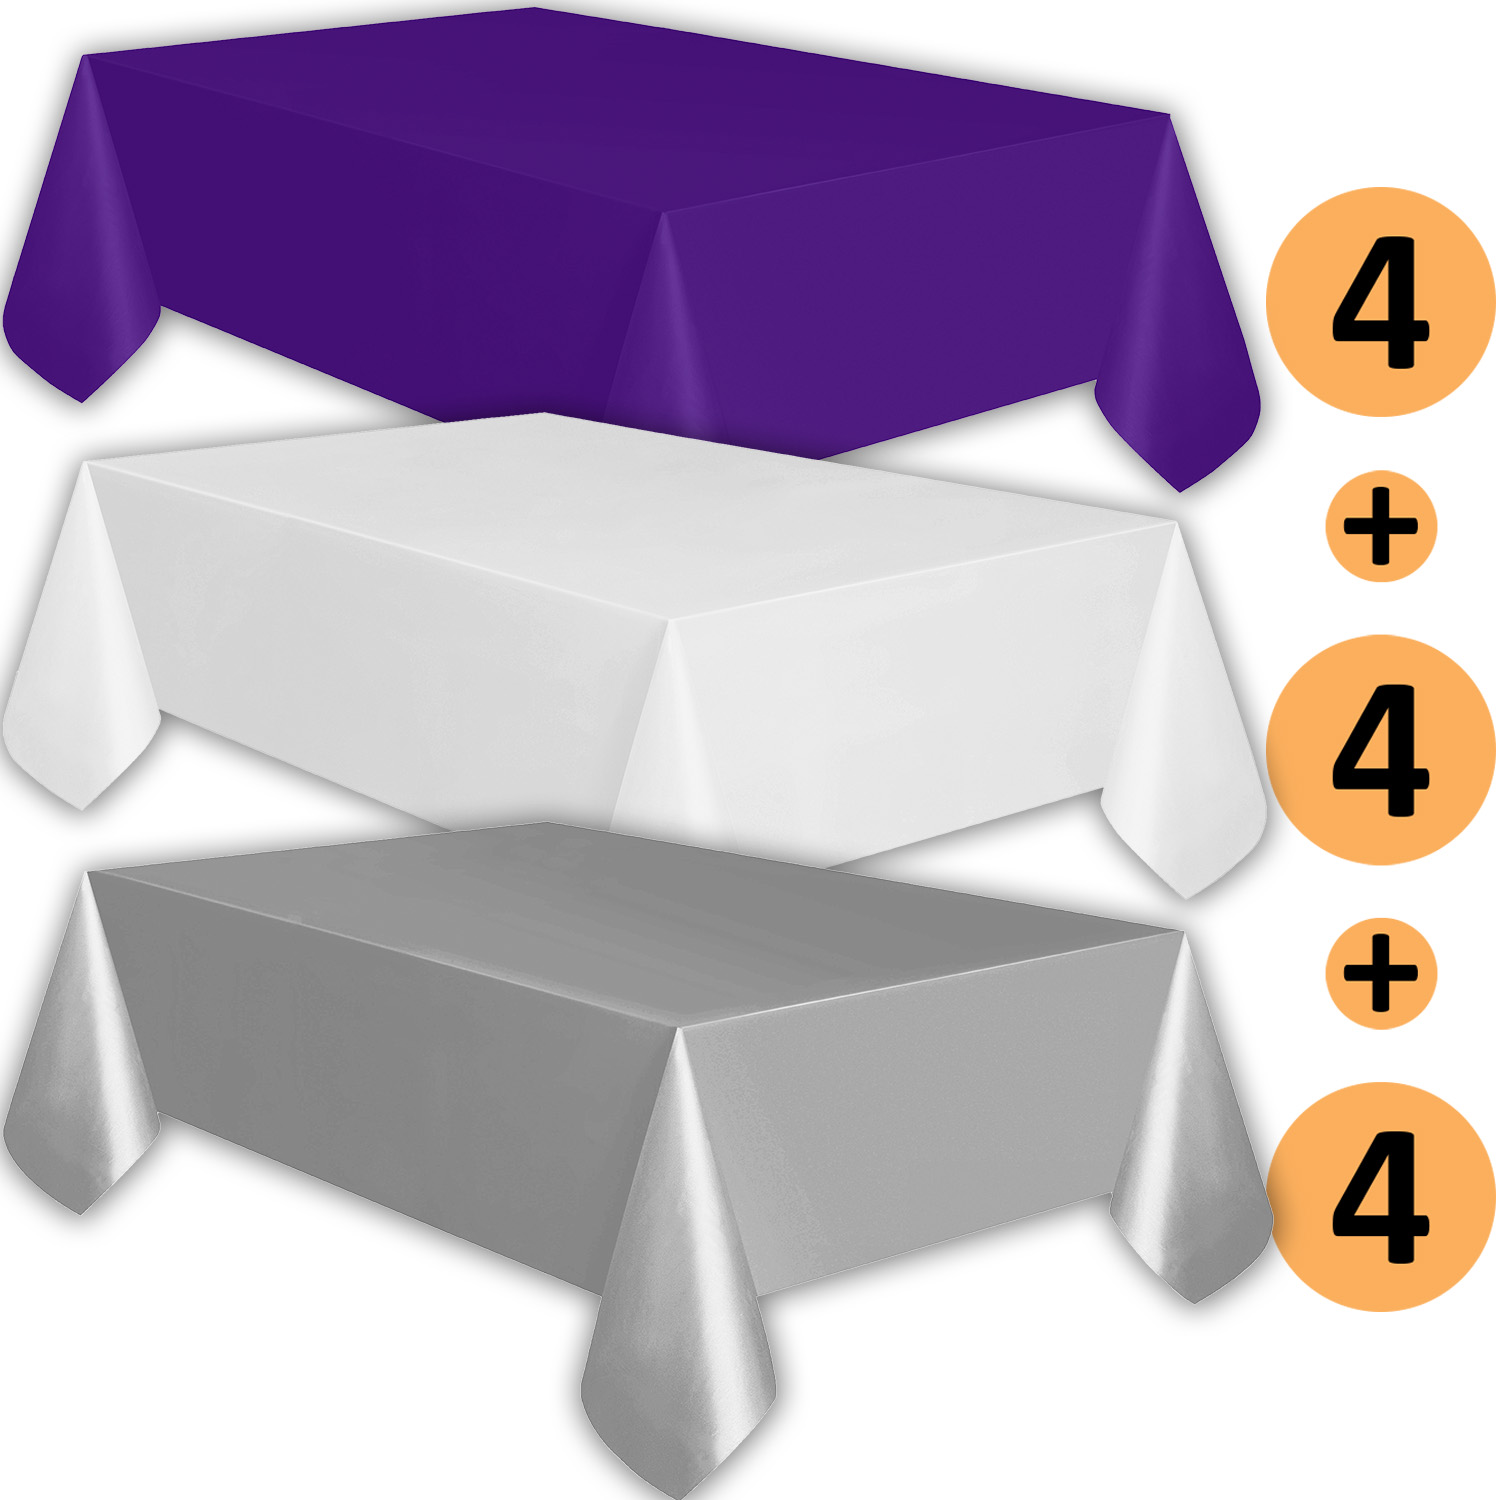 12 Plastic Tablecloths   Purple, White, Silver   Premium Thickness  Disposable Table Cover, 108 X 54 Inch, 4 Each Color